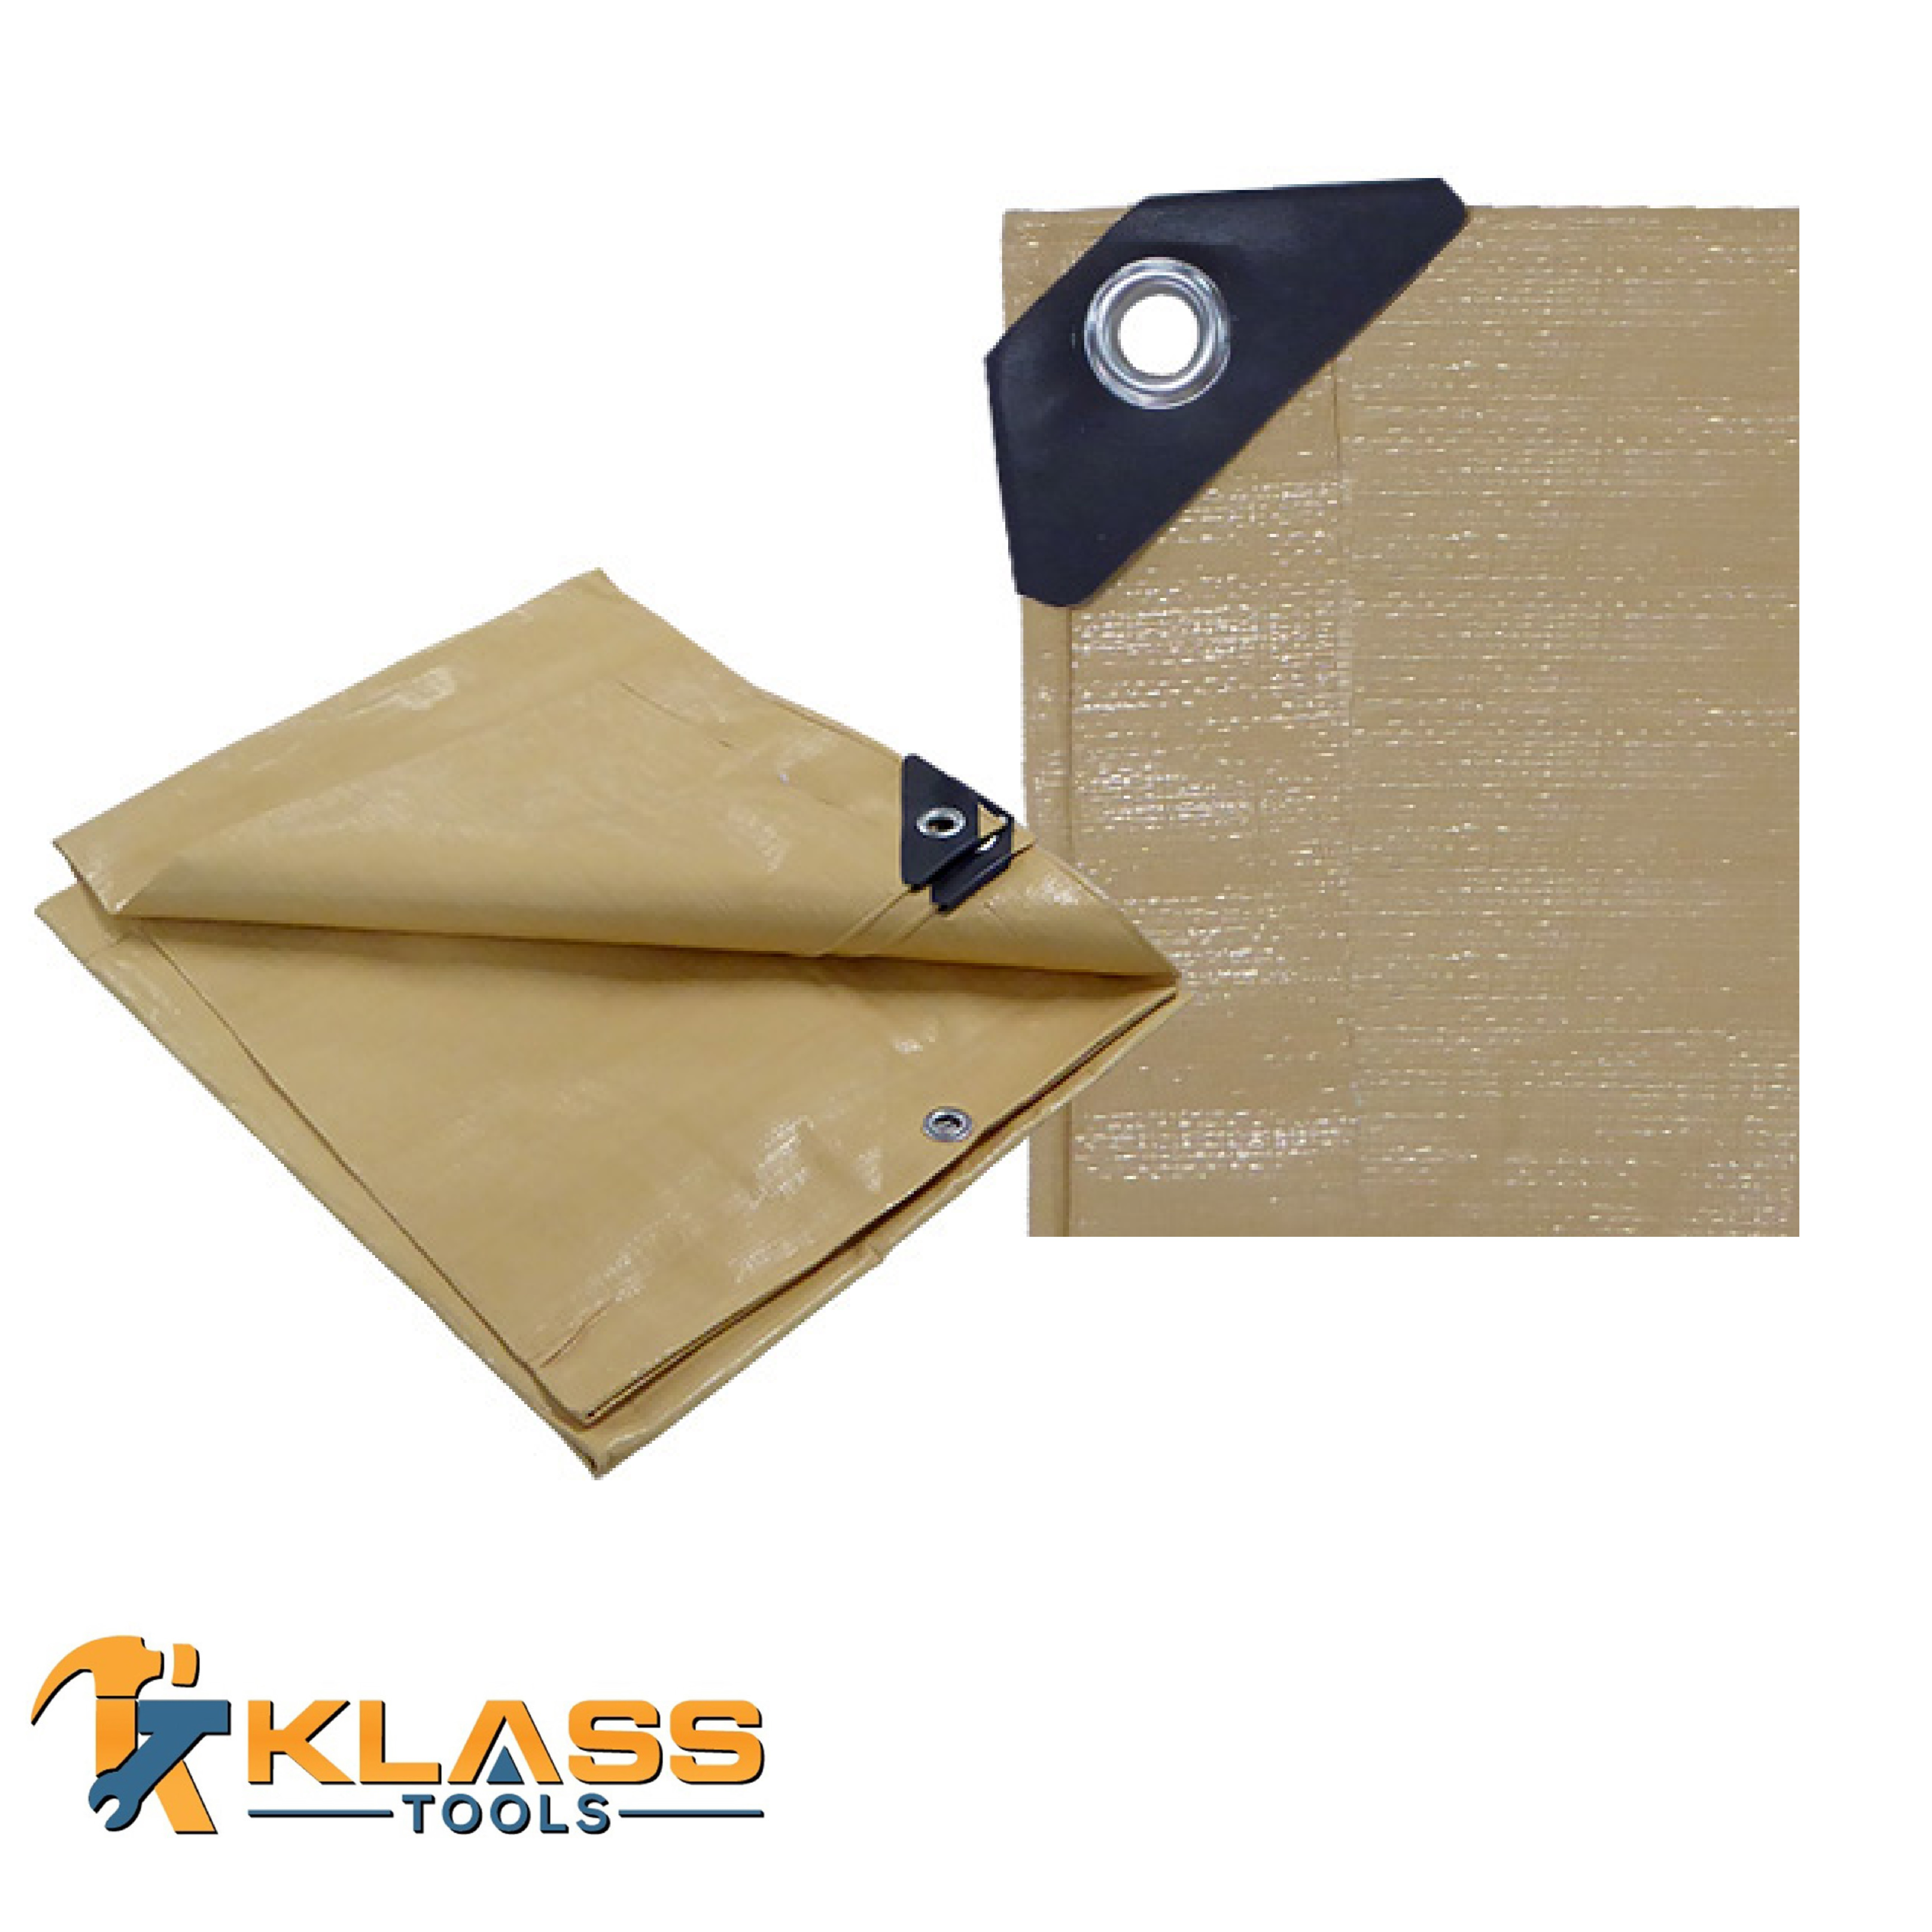 08 x 12 Feet Beige Tarp (Pack of 1)